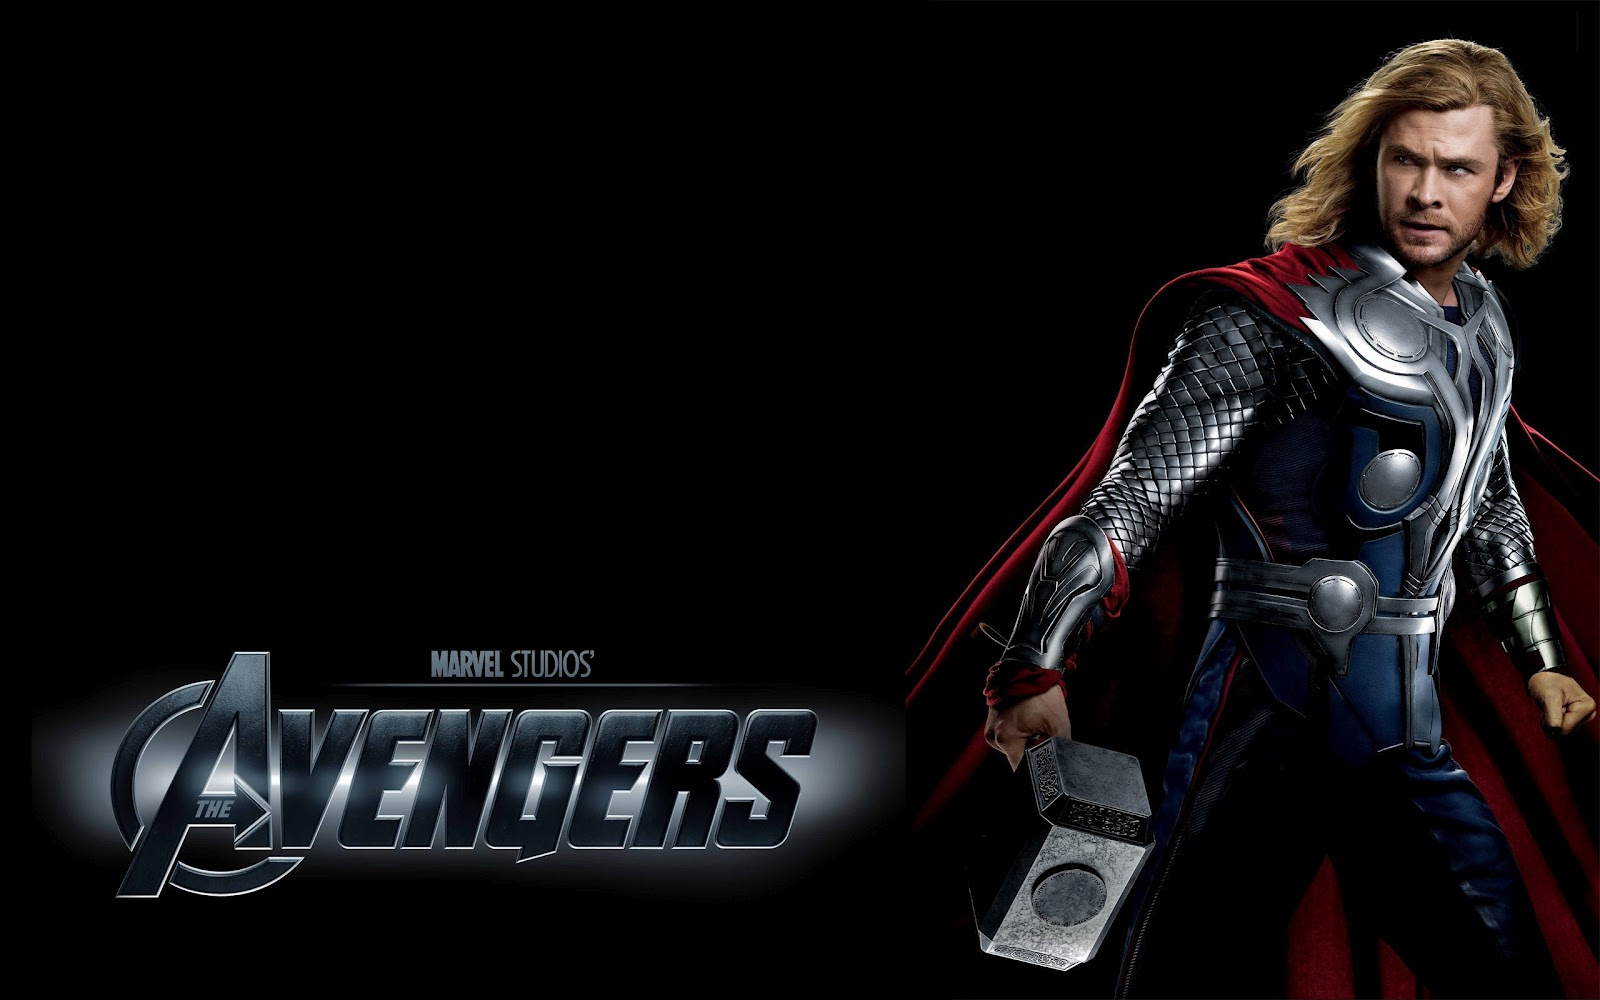 Thor Pictures Free Wallpaper: The Avengers All Characters Posters HD Wallpapers